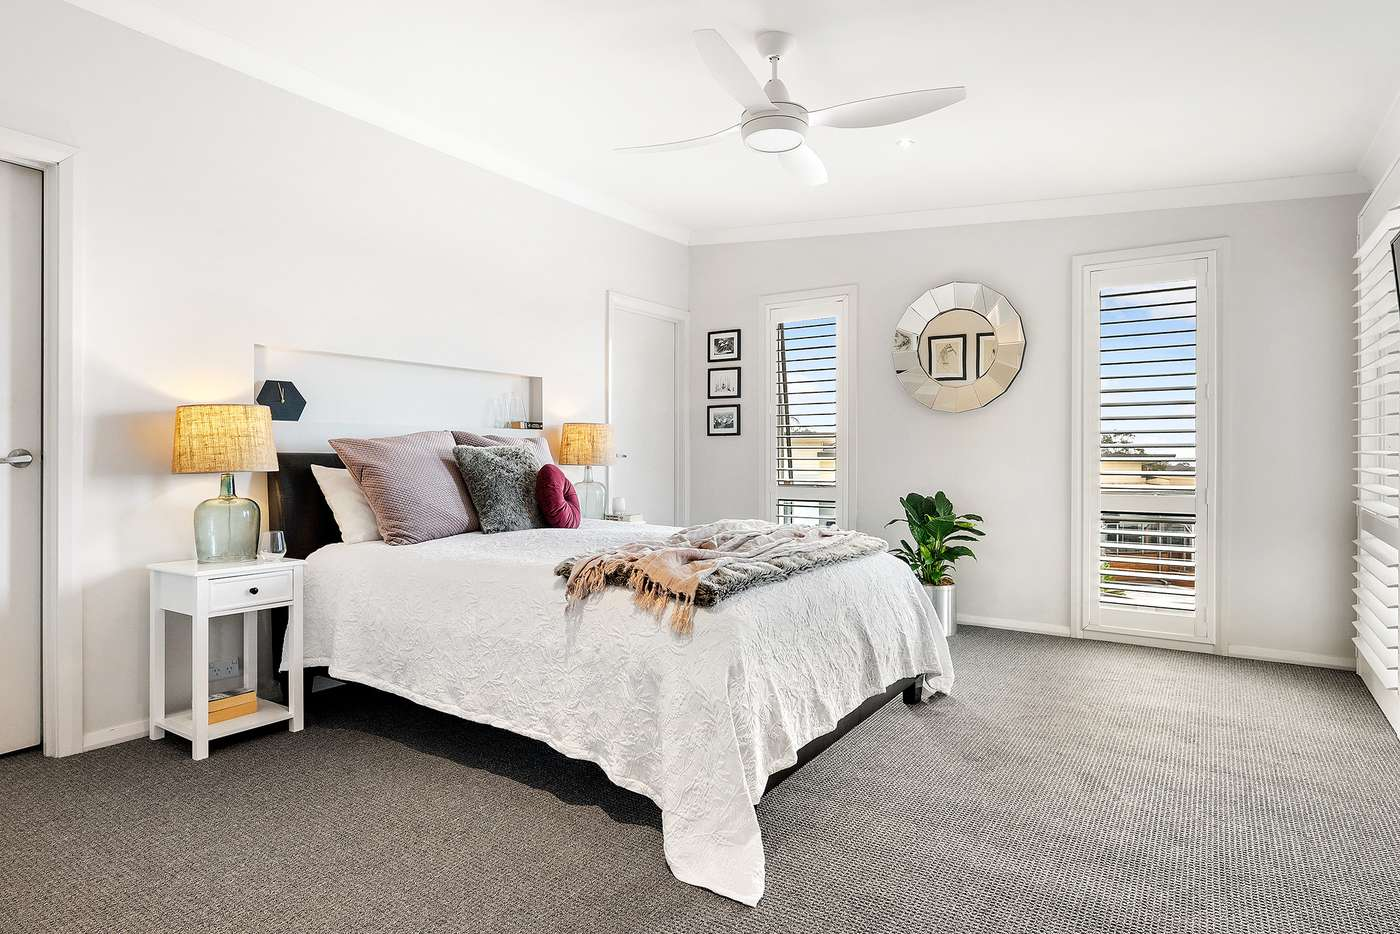 Sixth view of Homely house listing, 9 Franciska Close, Floraville NSW 2280